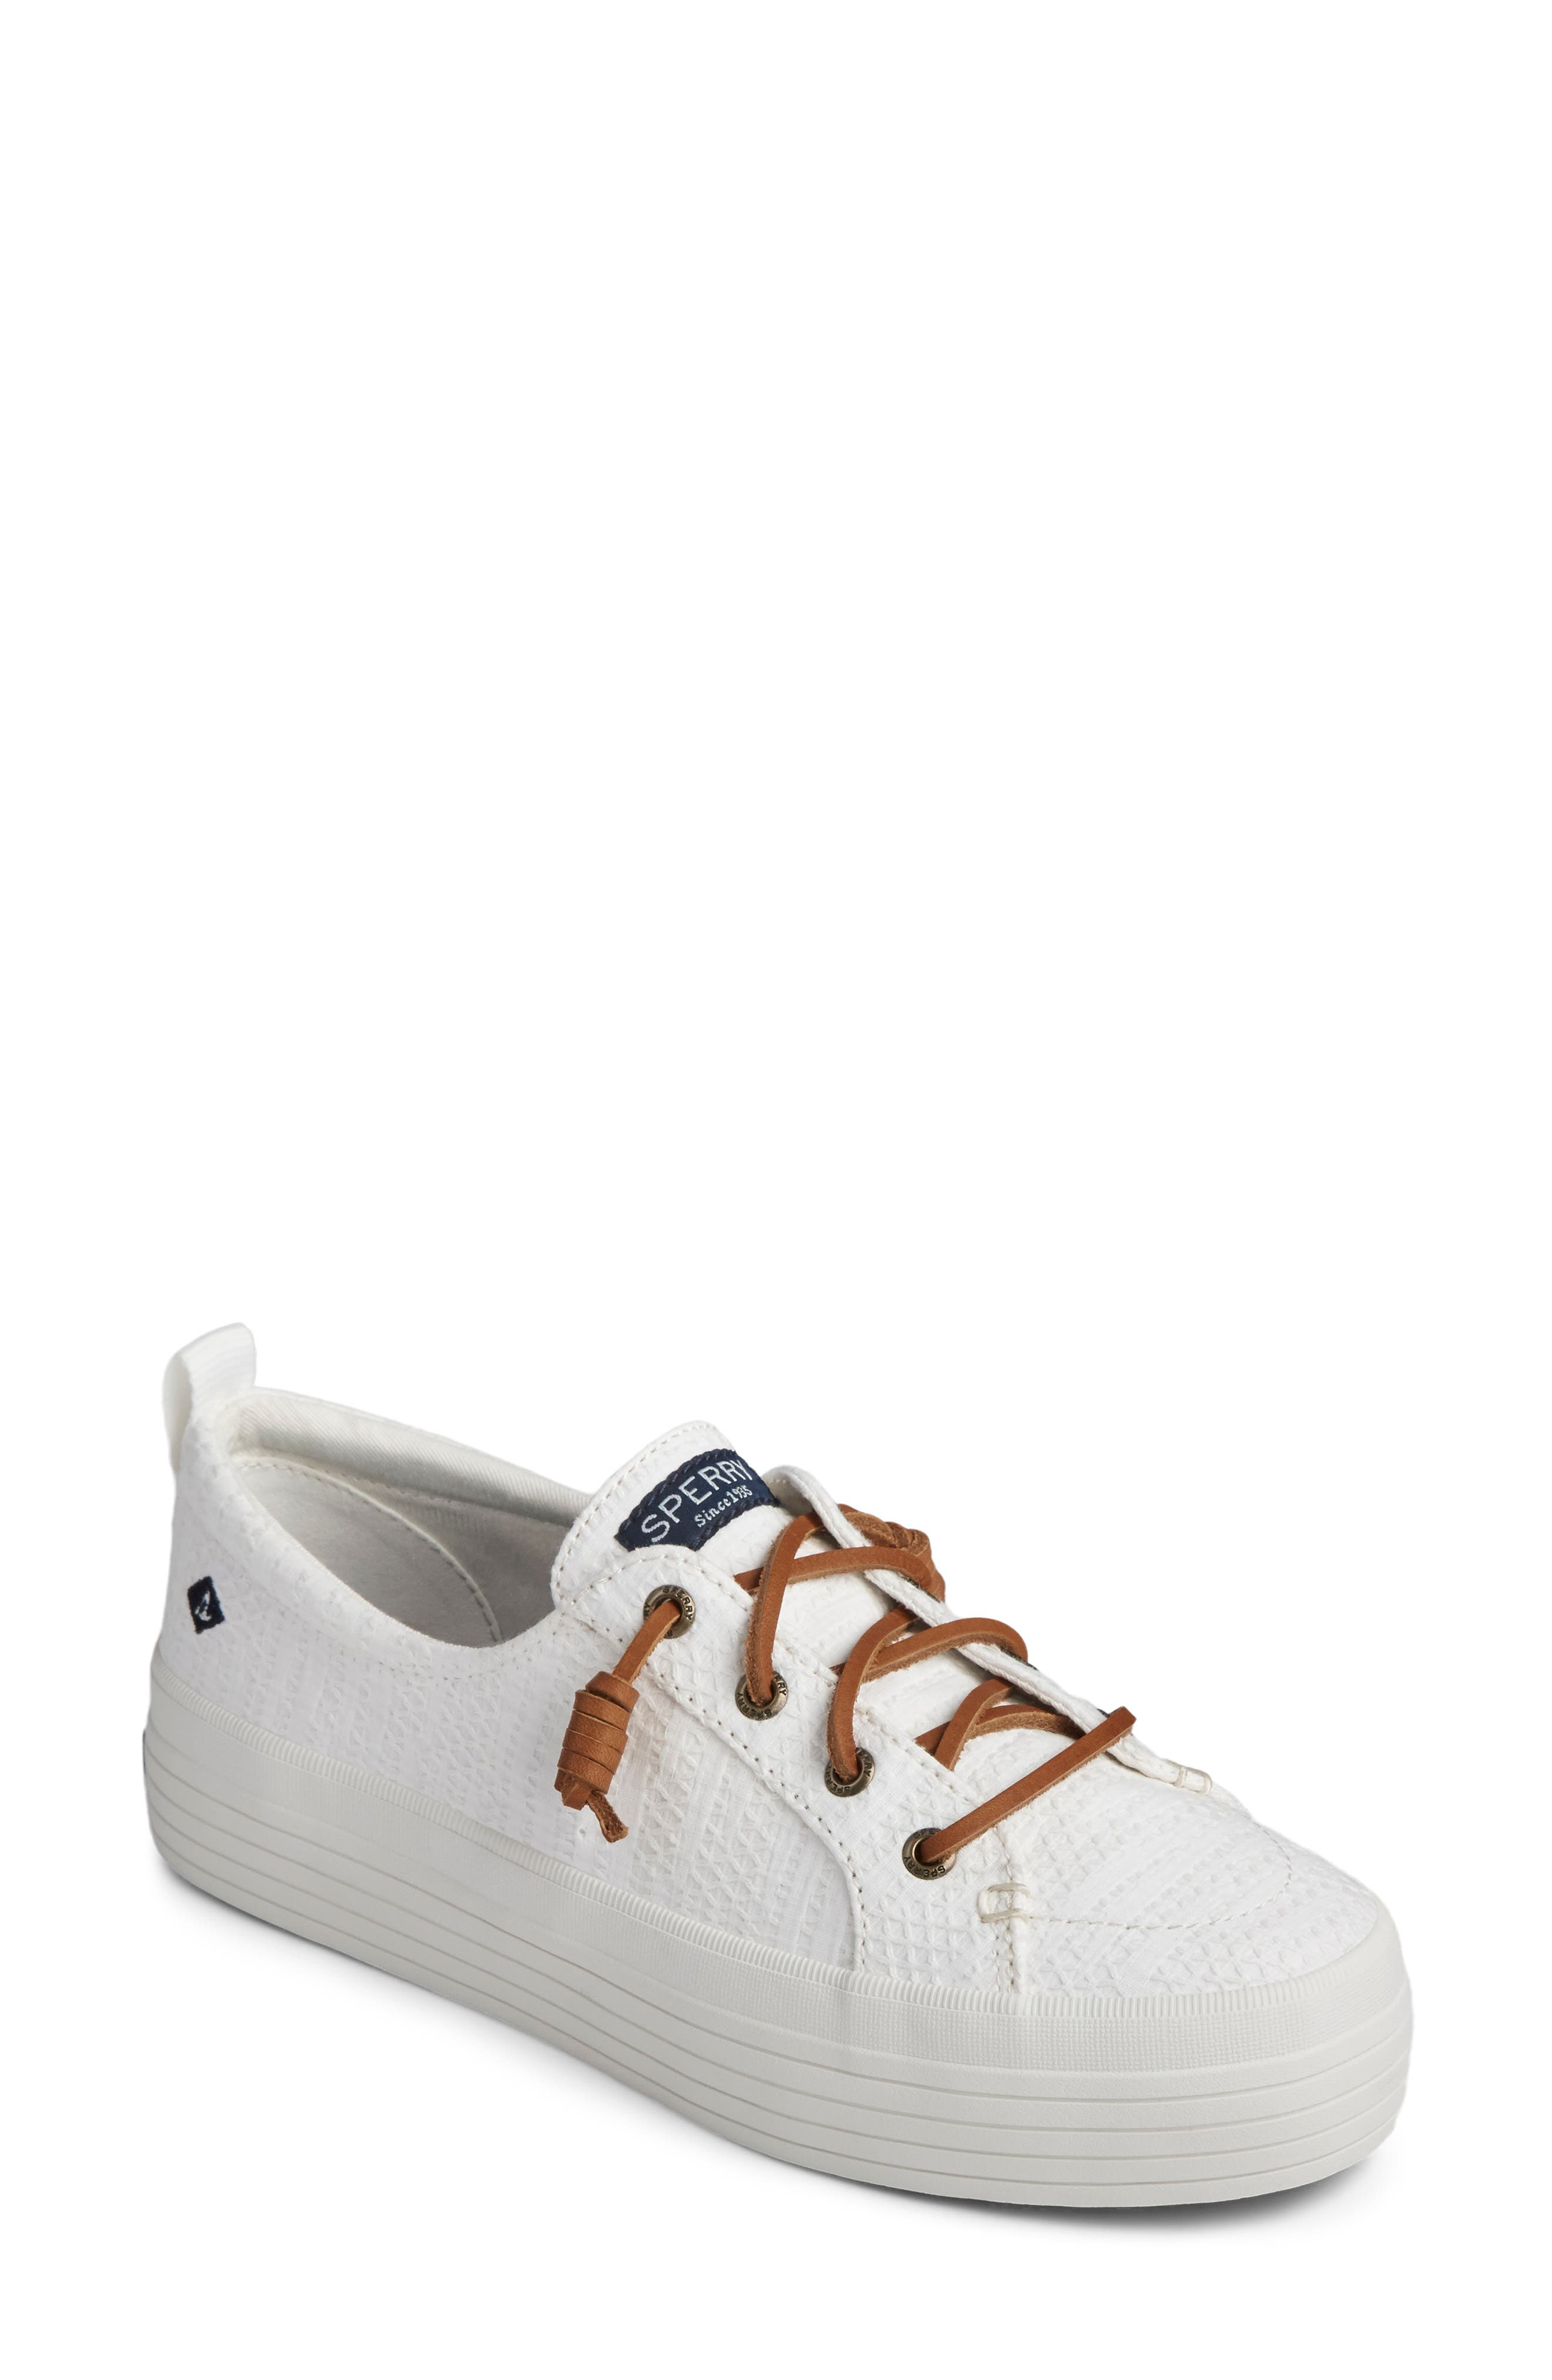 Women's Sperry Shoes | Nordstrom